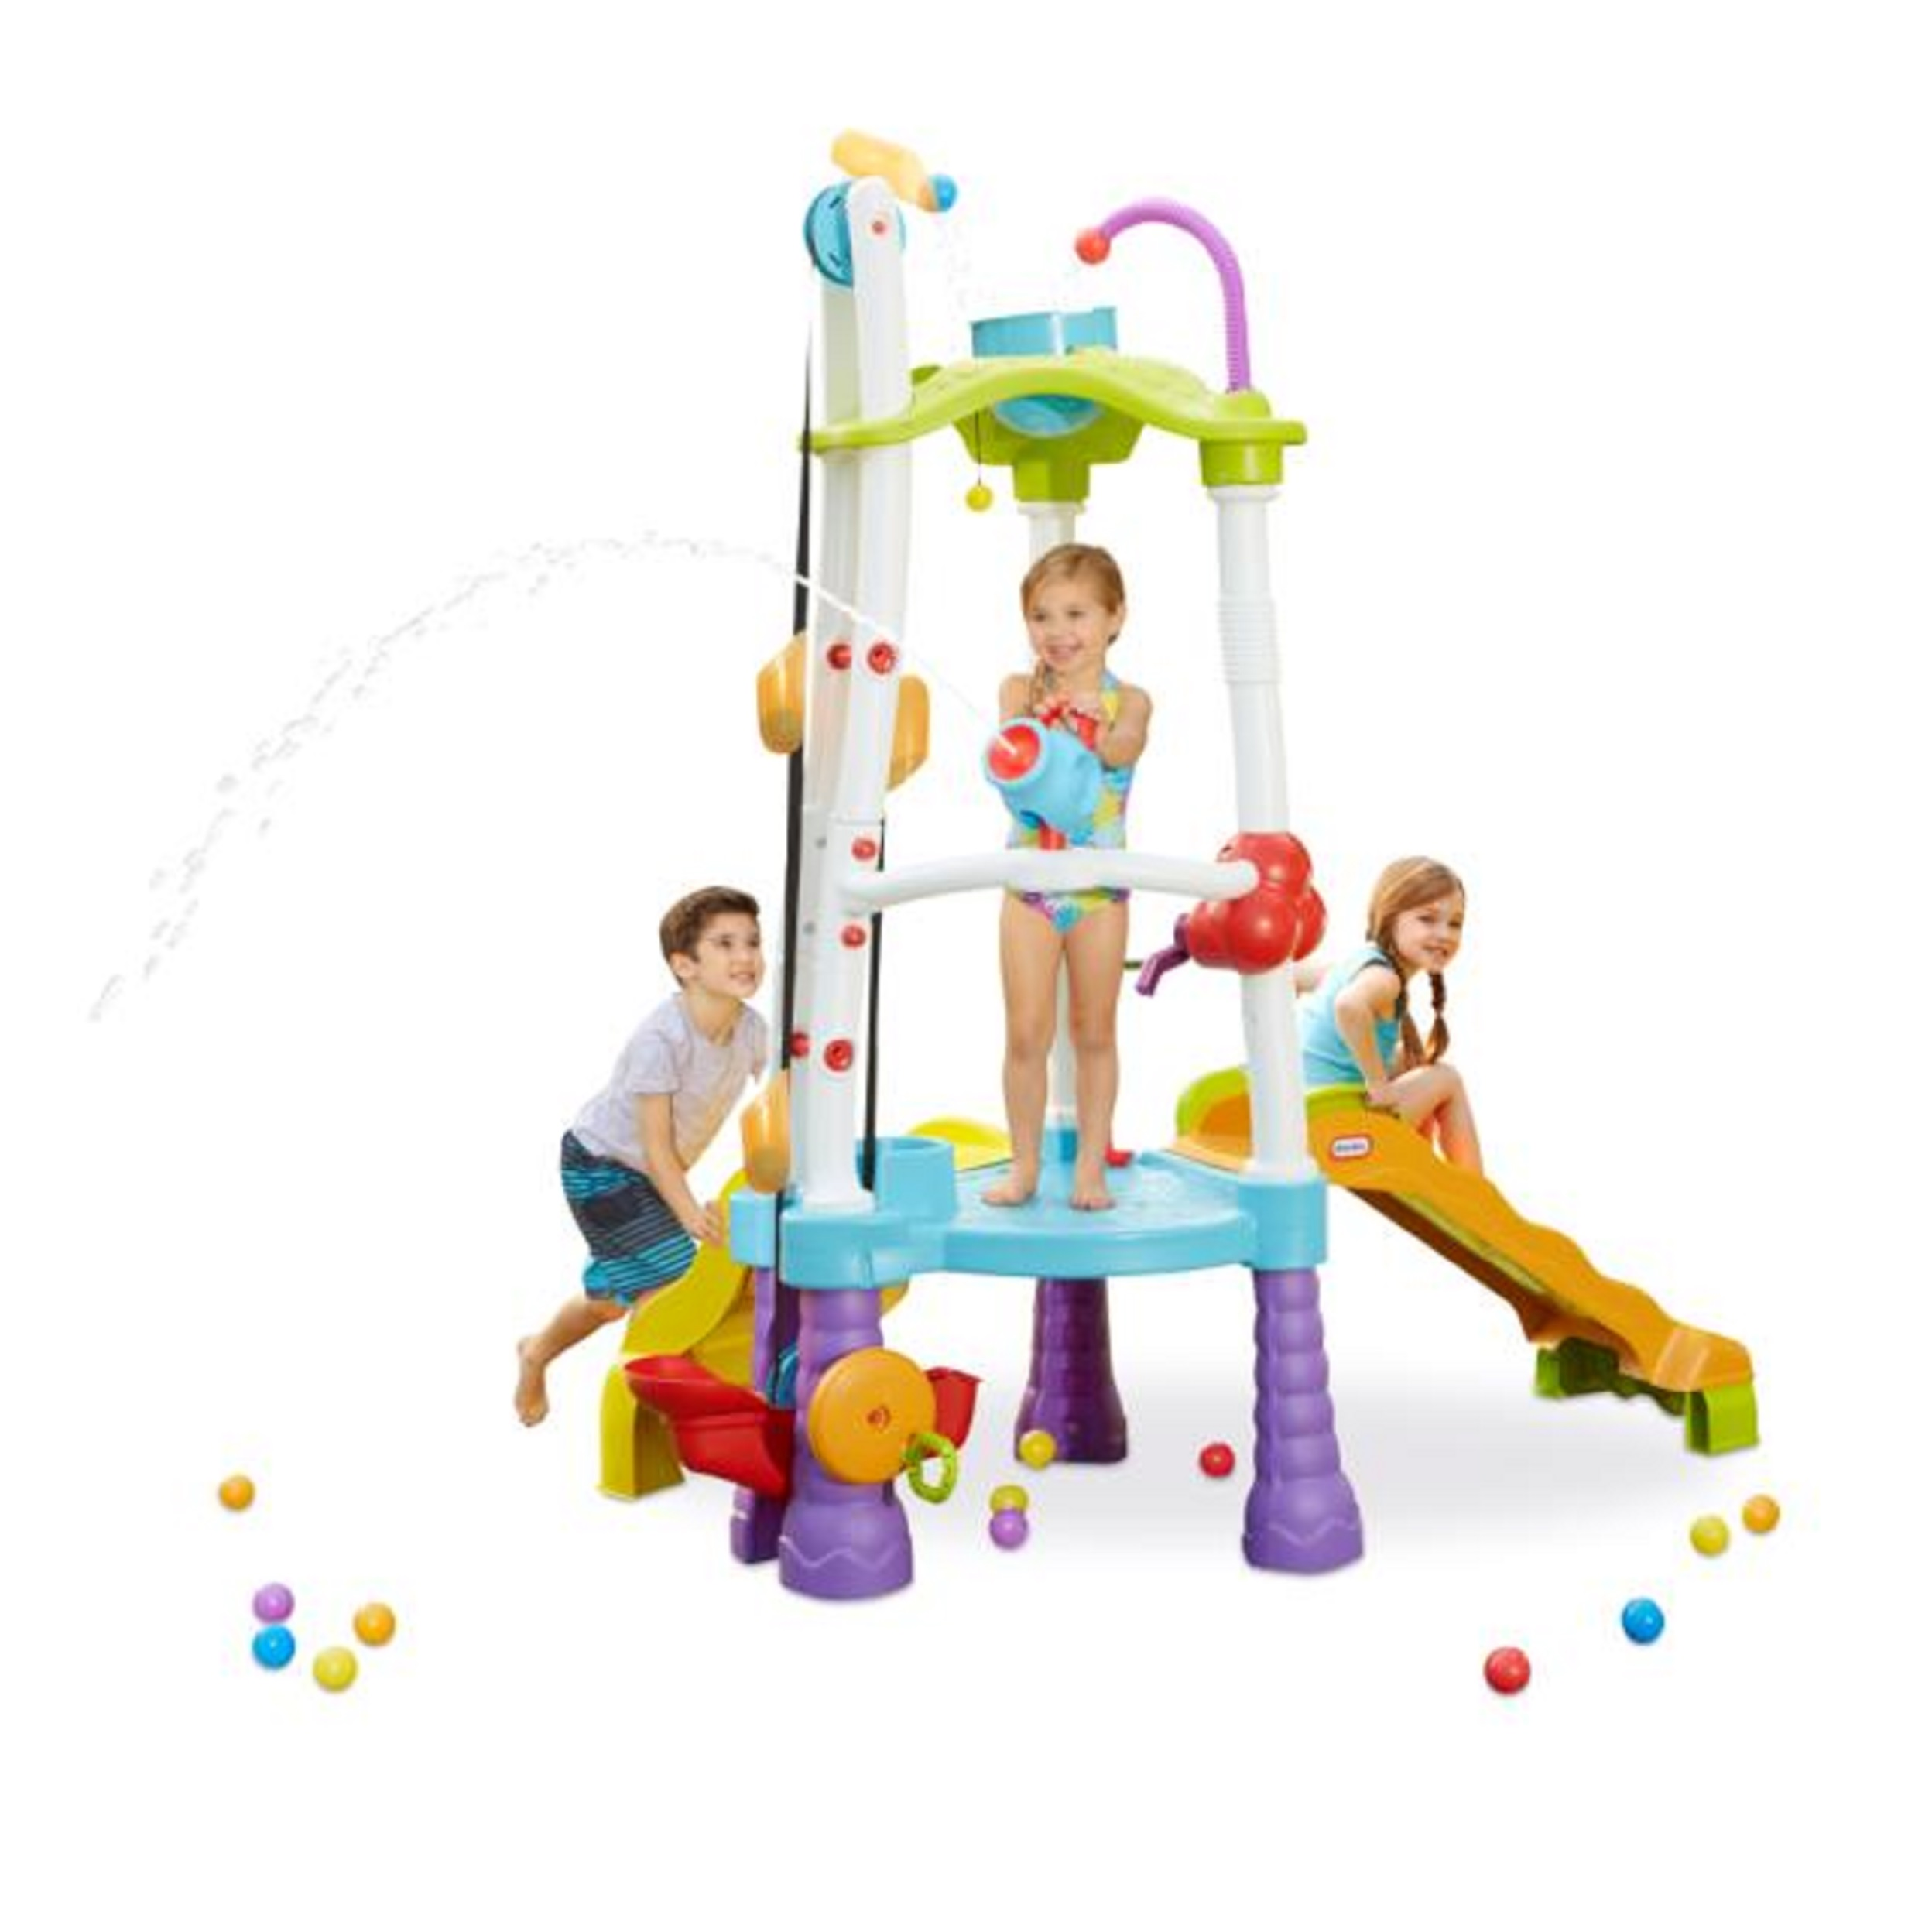 Little Tikes Fun Zone Tumblin\' Tower Climber, Indoor/Outdoor ...